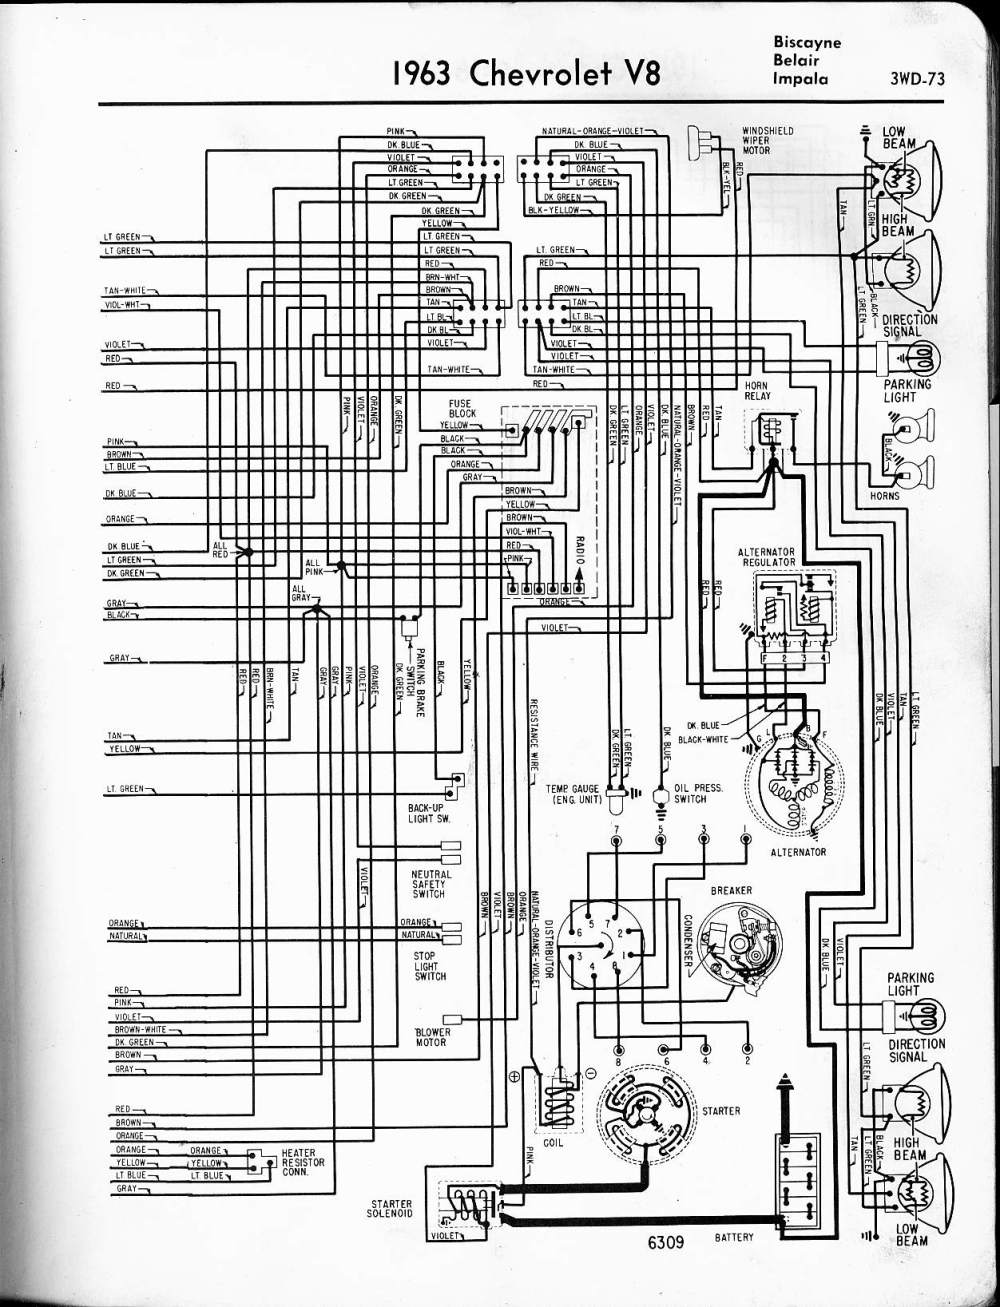 medium resolution of 57 65 chevy wiring diagrams wiring schematic 2005 impala 1963 v8 biscayne belair impala